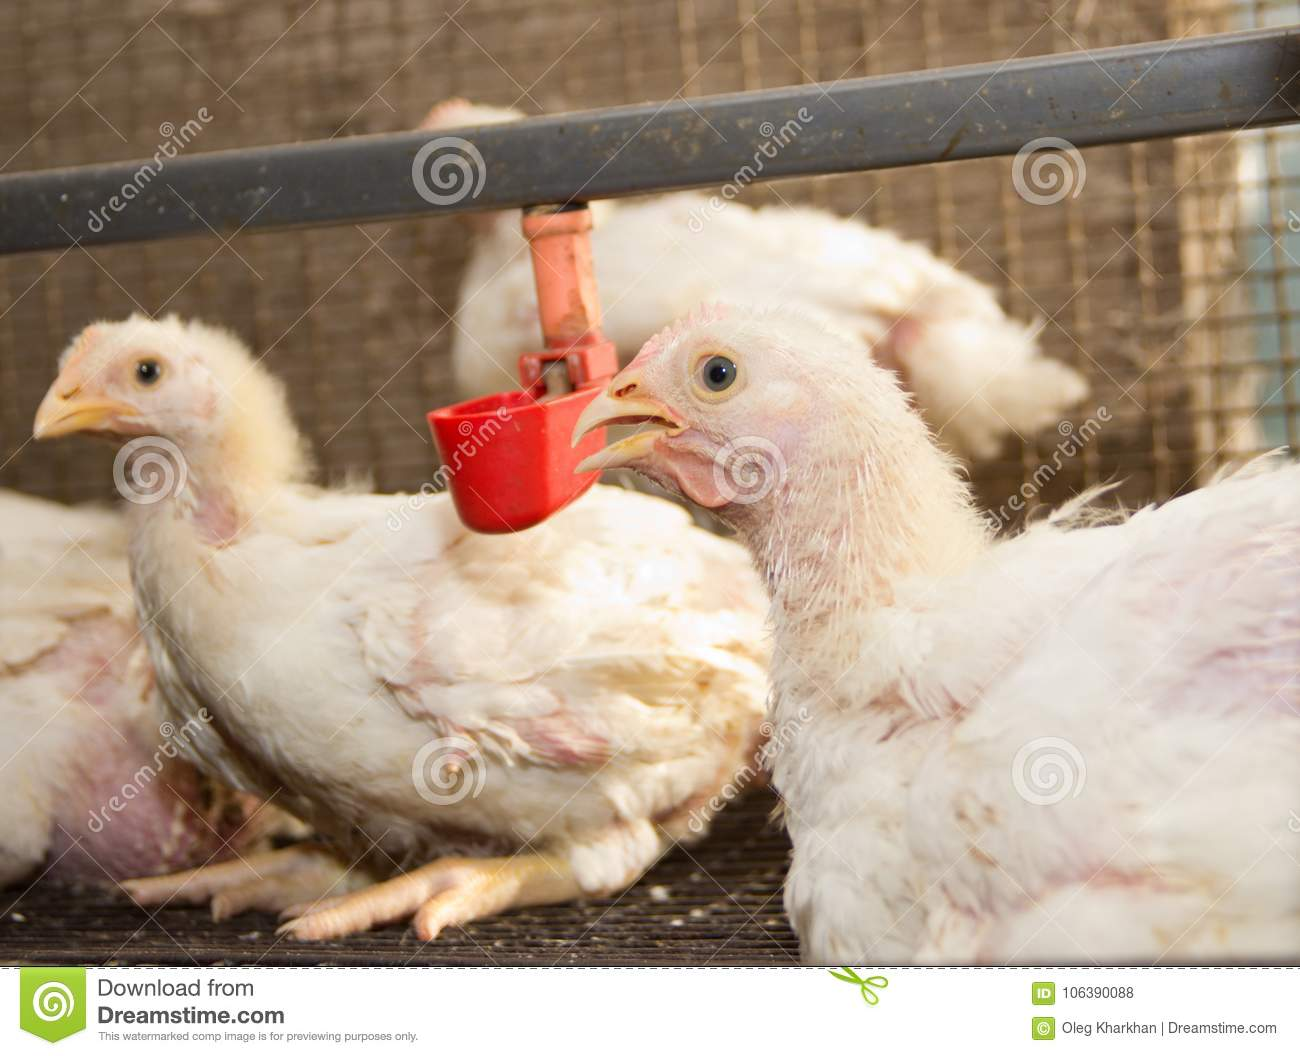 Modern Chicken Farm Production Of White Meat Stock Photo